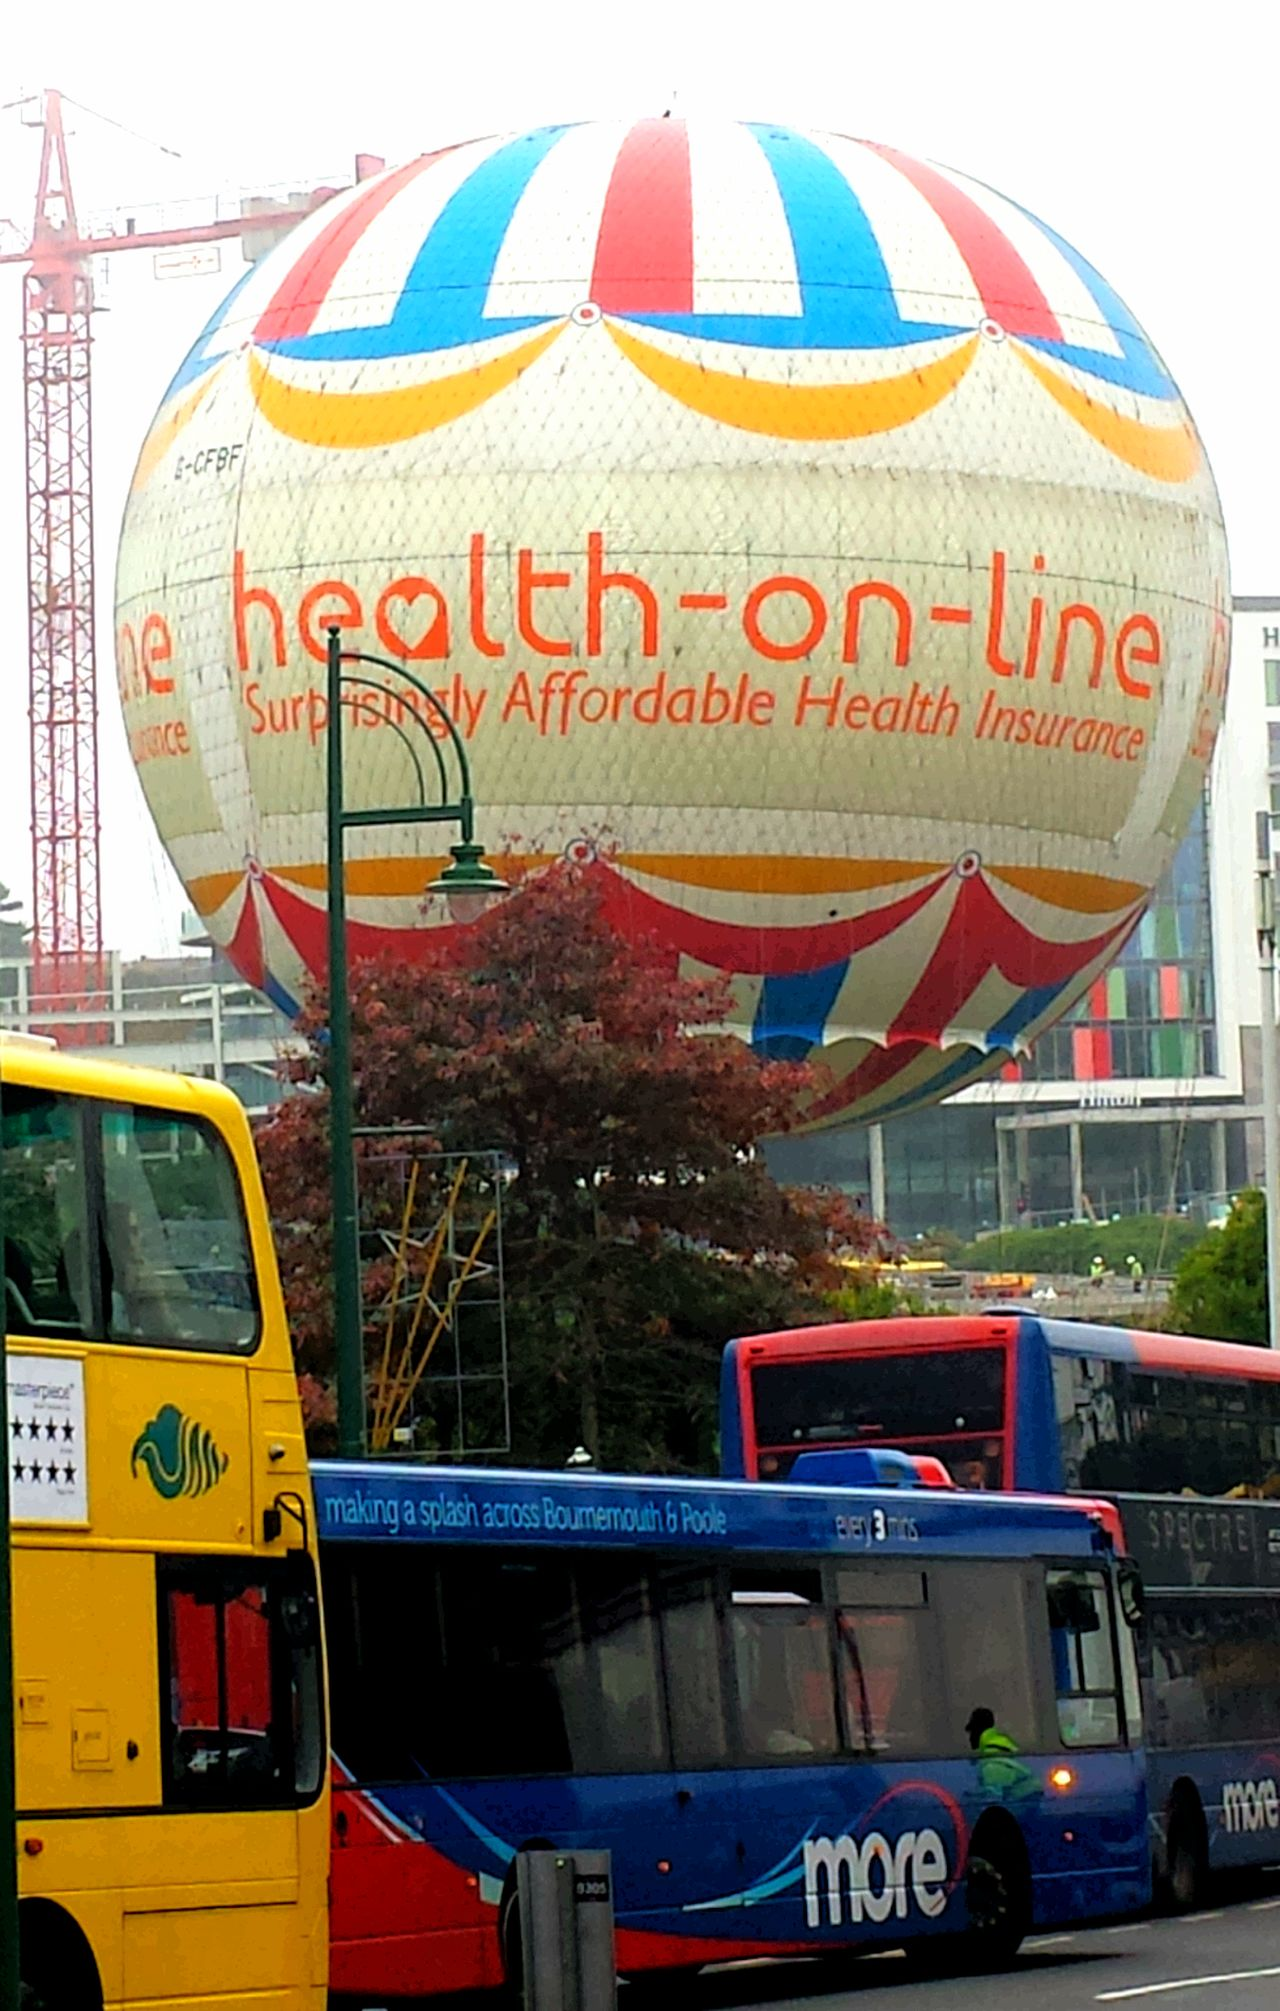 Balloon Advertising Health-on-line Buses Crane Outdoors Busy Road Bournemouth England 🌹 Samsung Galaxy S4 Flying High Flying Low